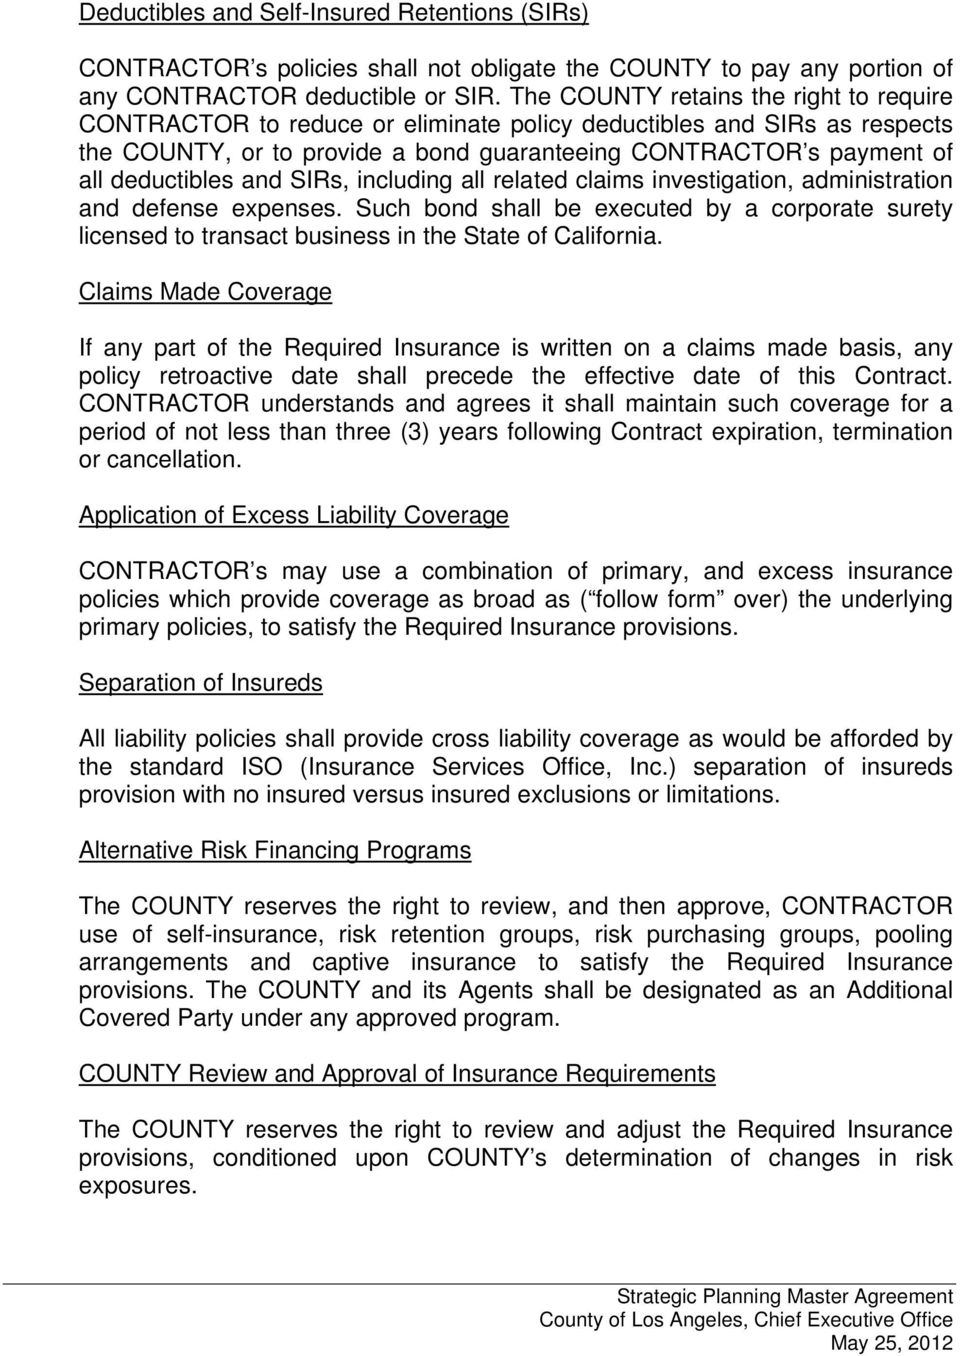 and SIRs, including all related claims investigation, administration and defense expenses. Such bond shall be executed by a corporate surety licensed to transact business in the State of California.